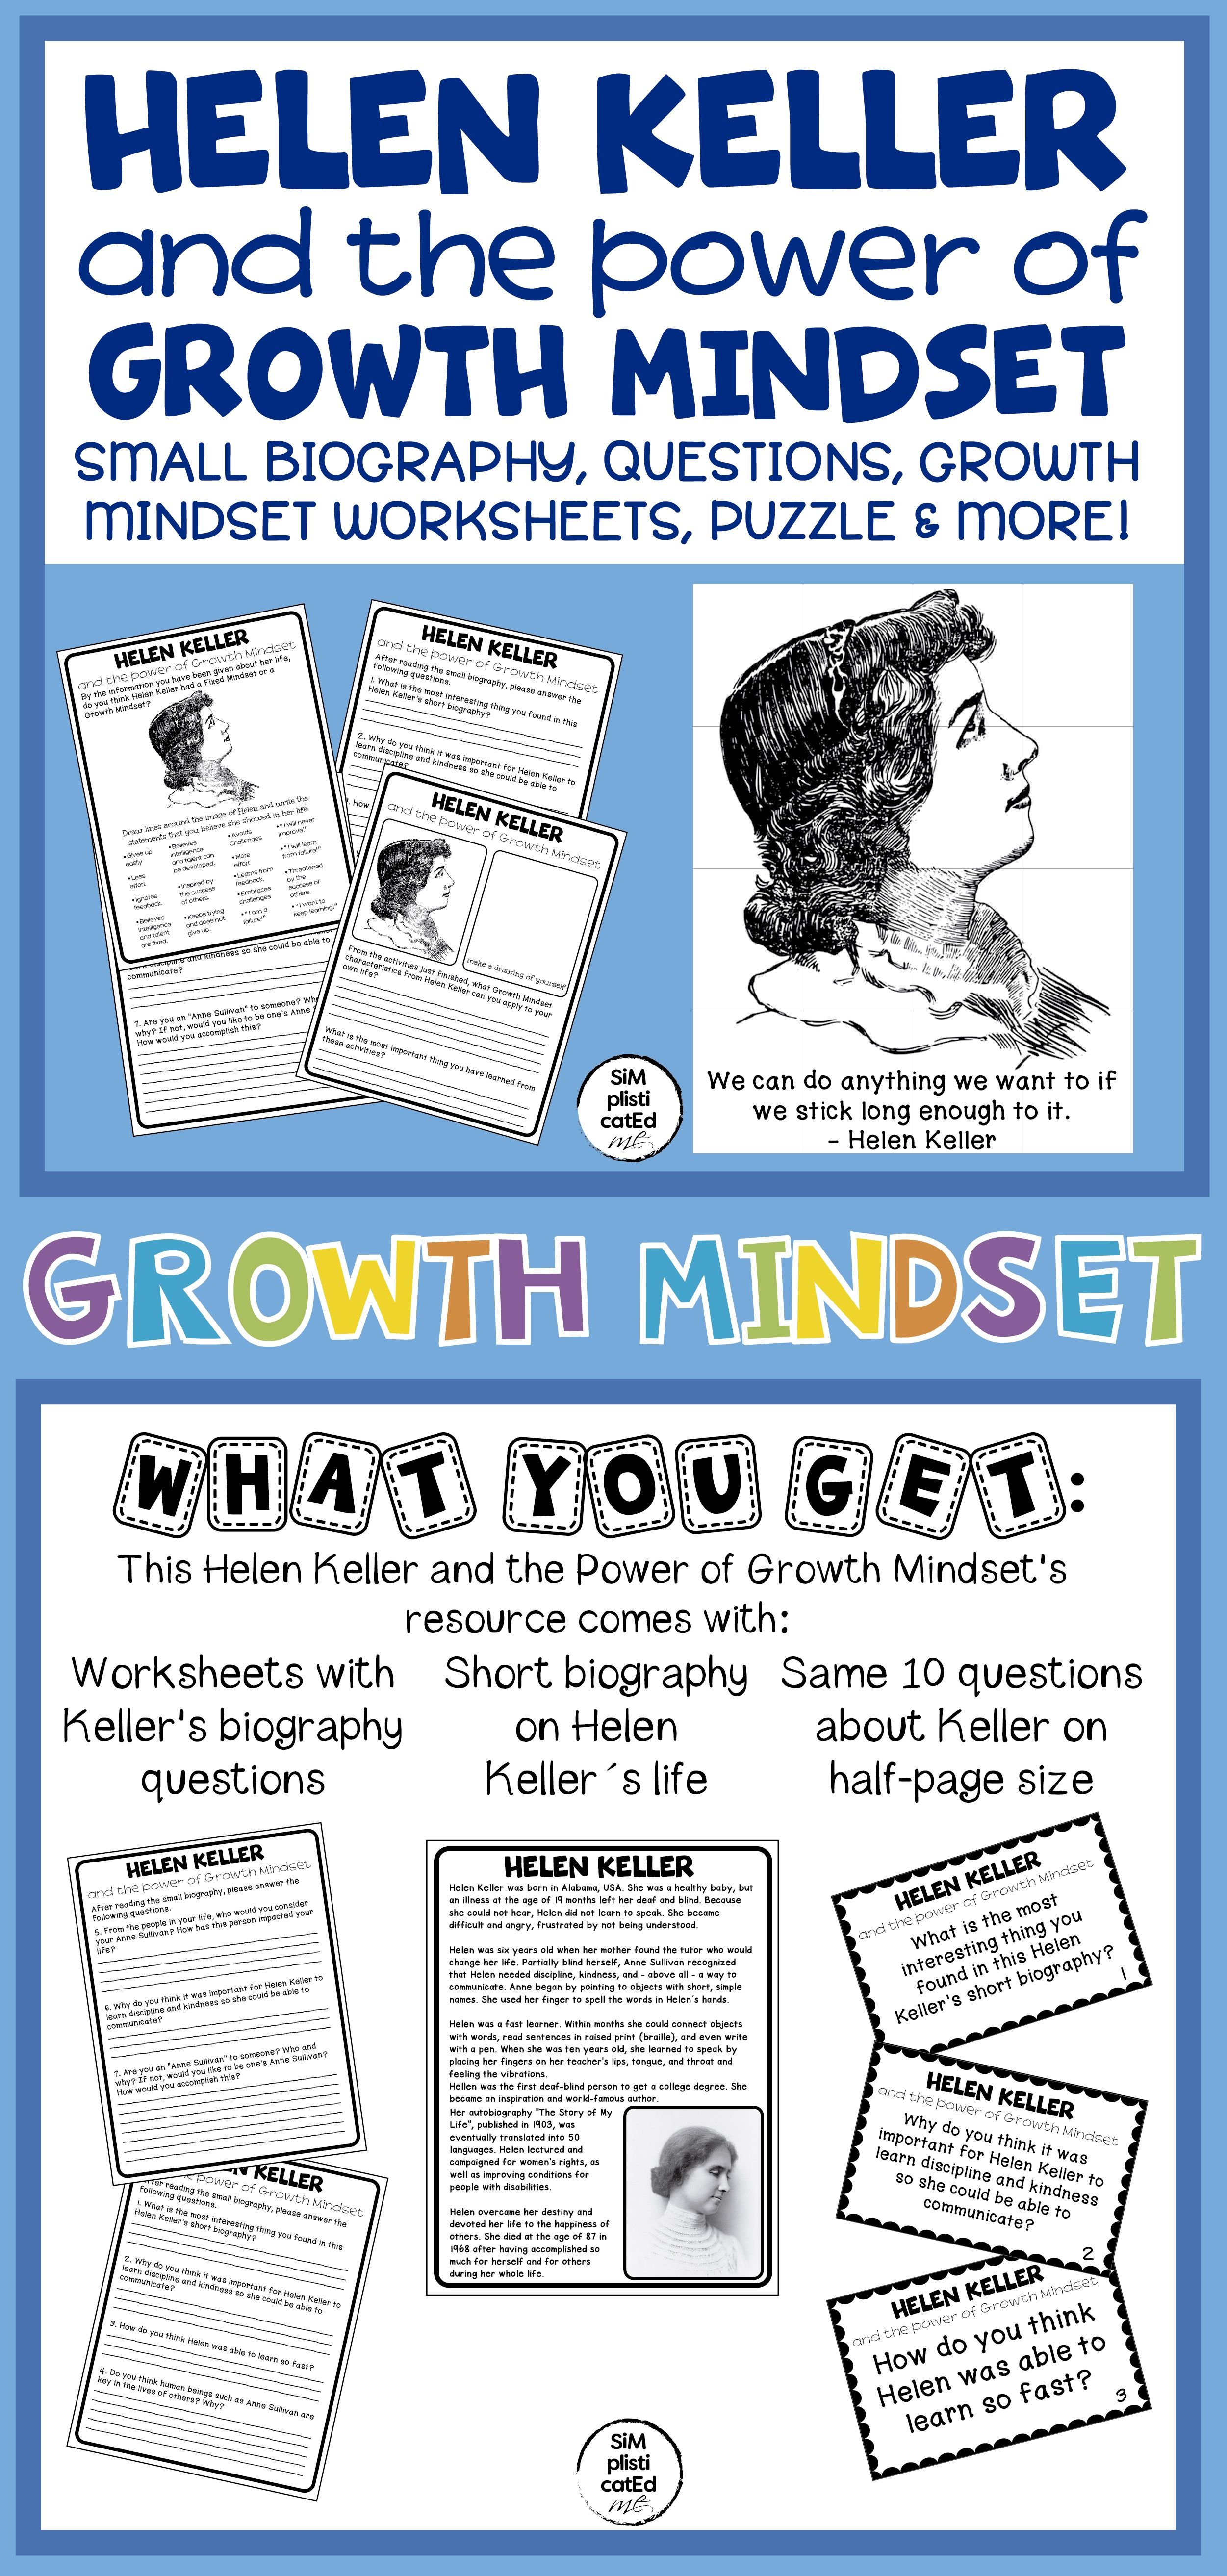 Helen Keller And The Power Of Growth Mindset